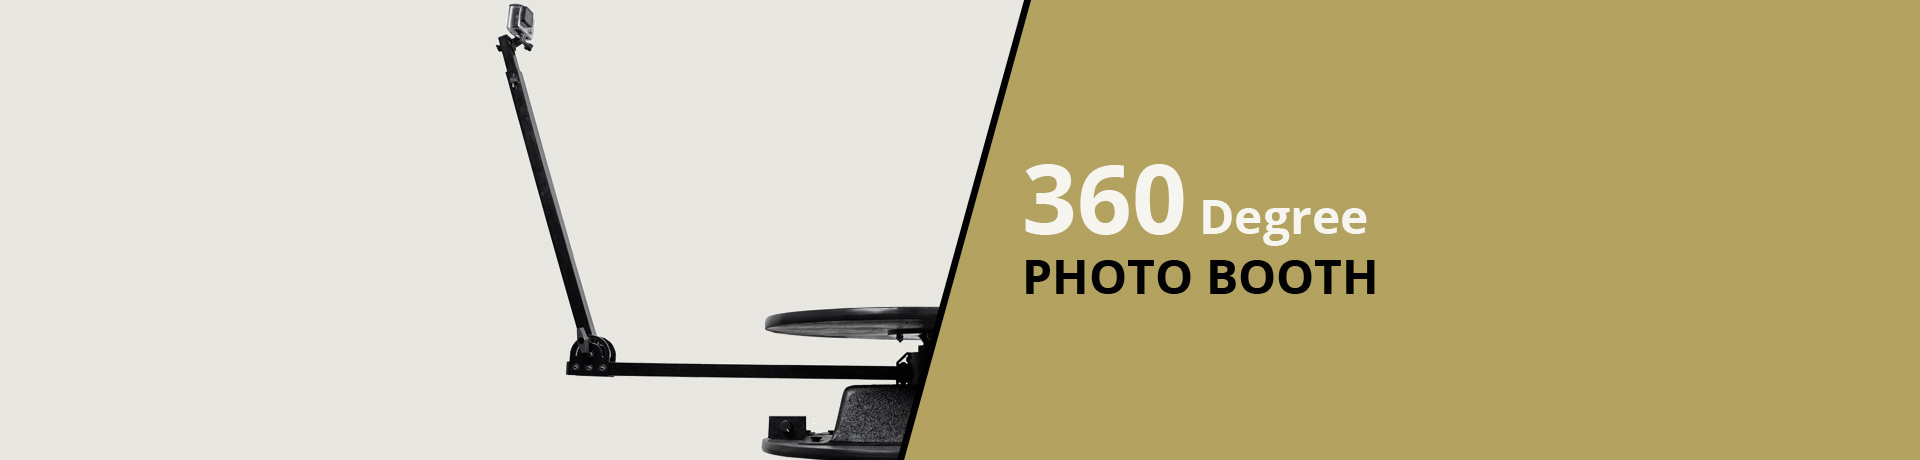 360degree photo booth